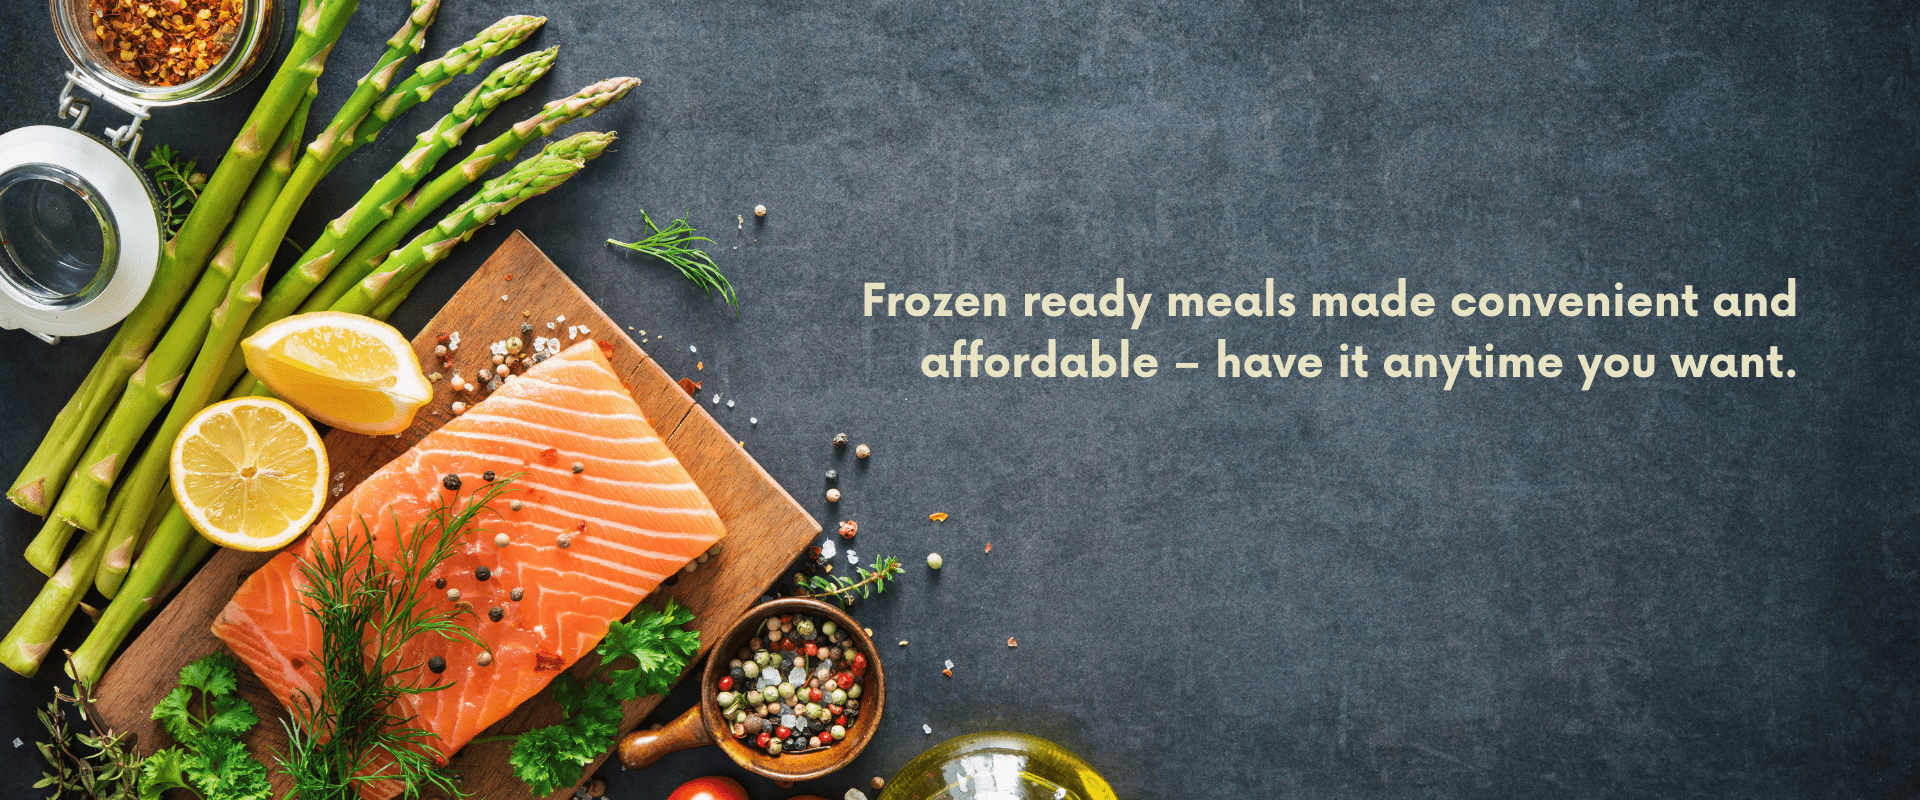 frozen meals homepage